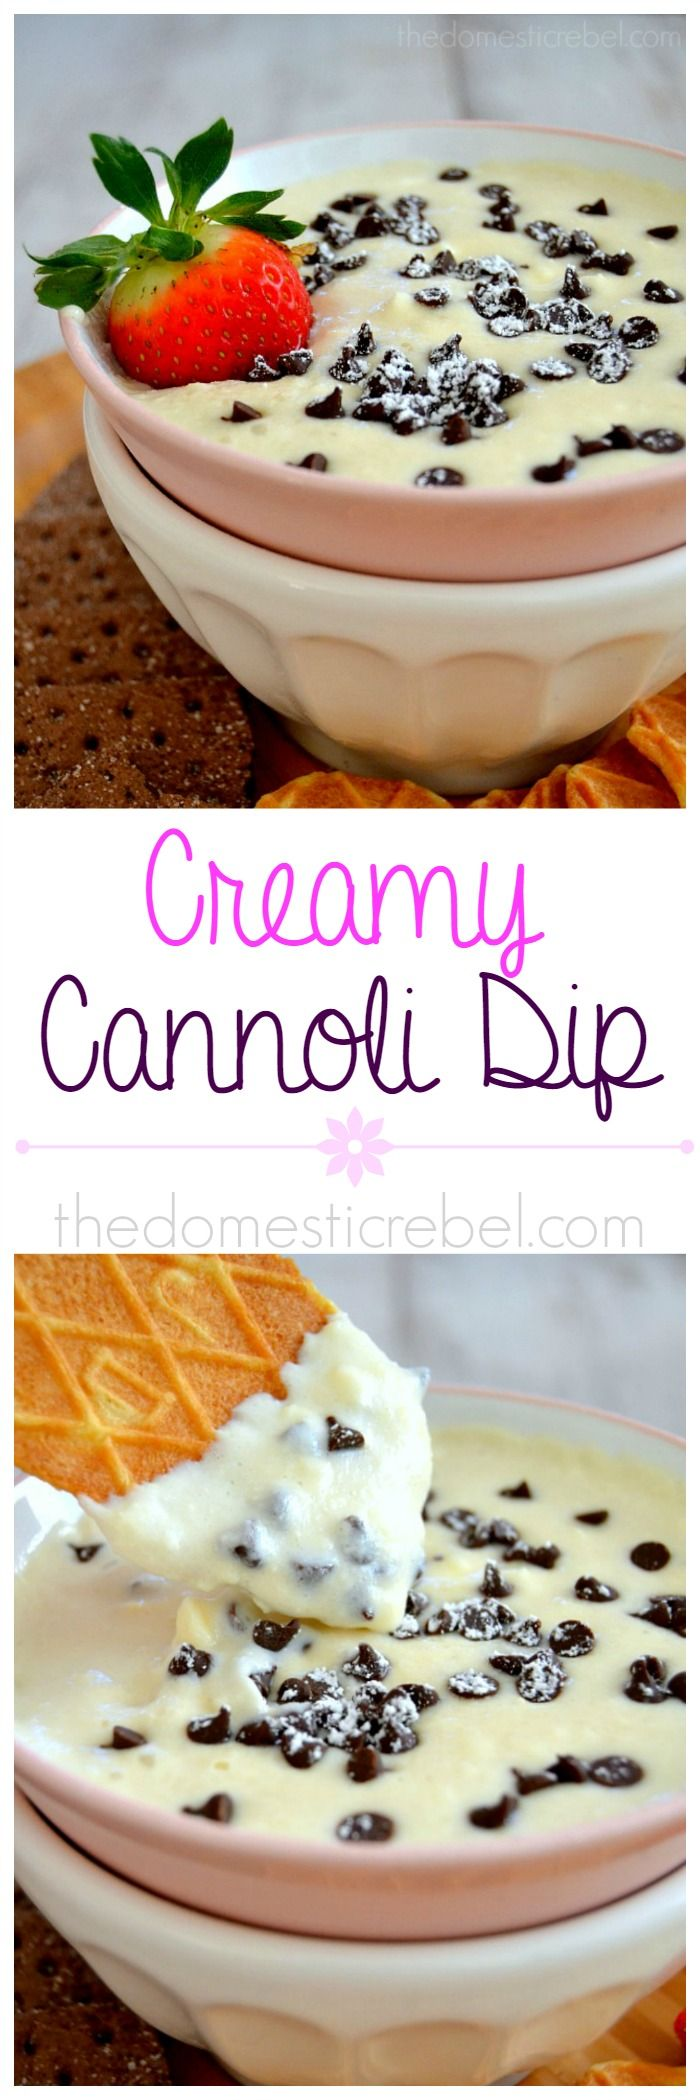 Creamy Cannoli Dip! Smooth, silky, creamy and rich, this dip tastes like cannoli cream in a convenient, dippable dessert! #cannoli #dessert